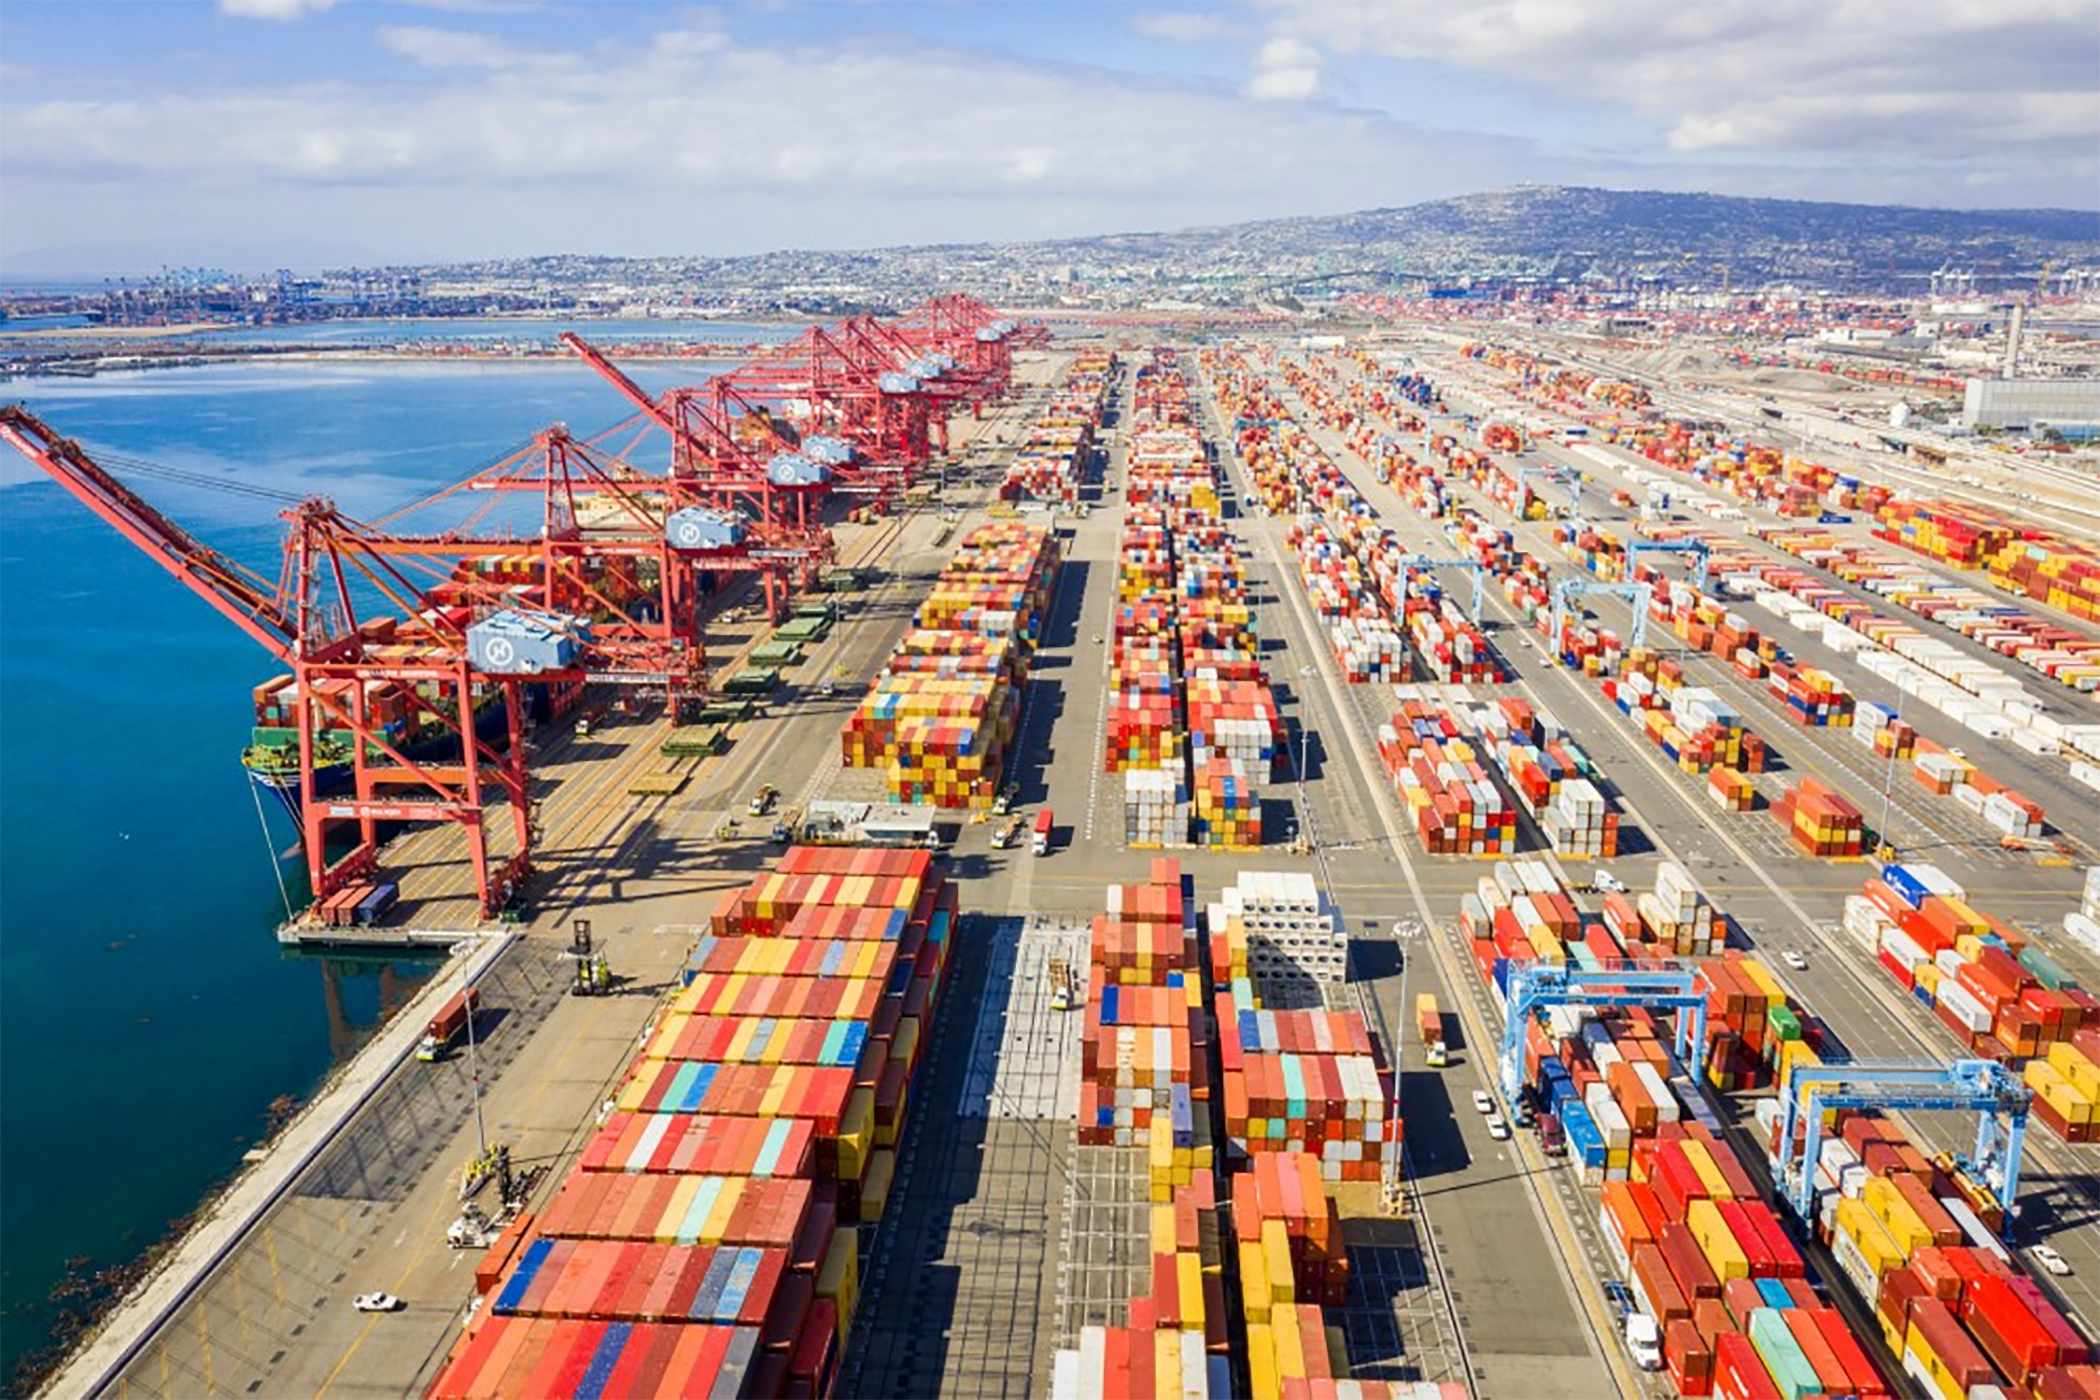 Most manufacturing is expected to reshore to other parts of Asia post-pandemic, a factor that will help keep steady port traffic in West Coast markets such as Los Angeles, Seattle and Oakland. (iStock)